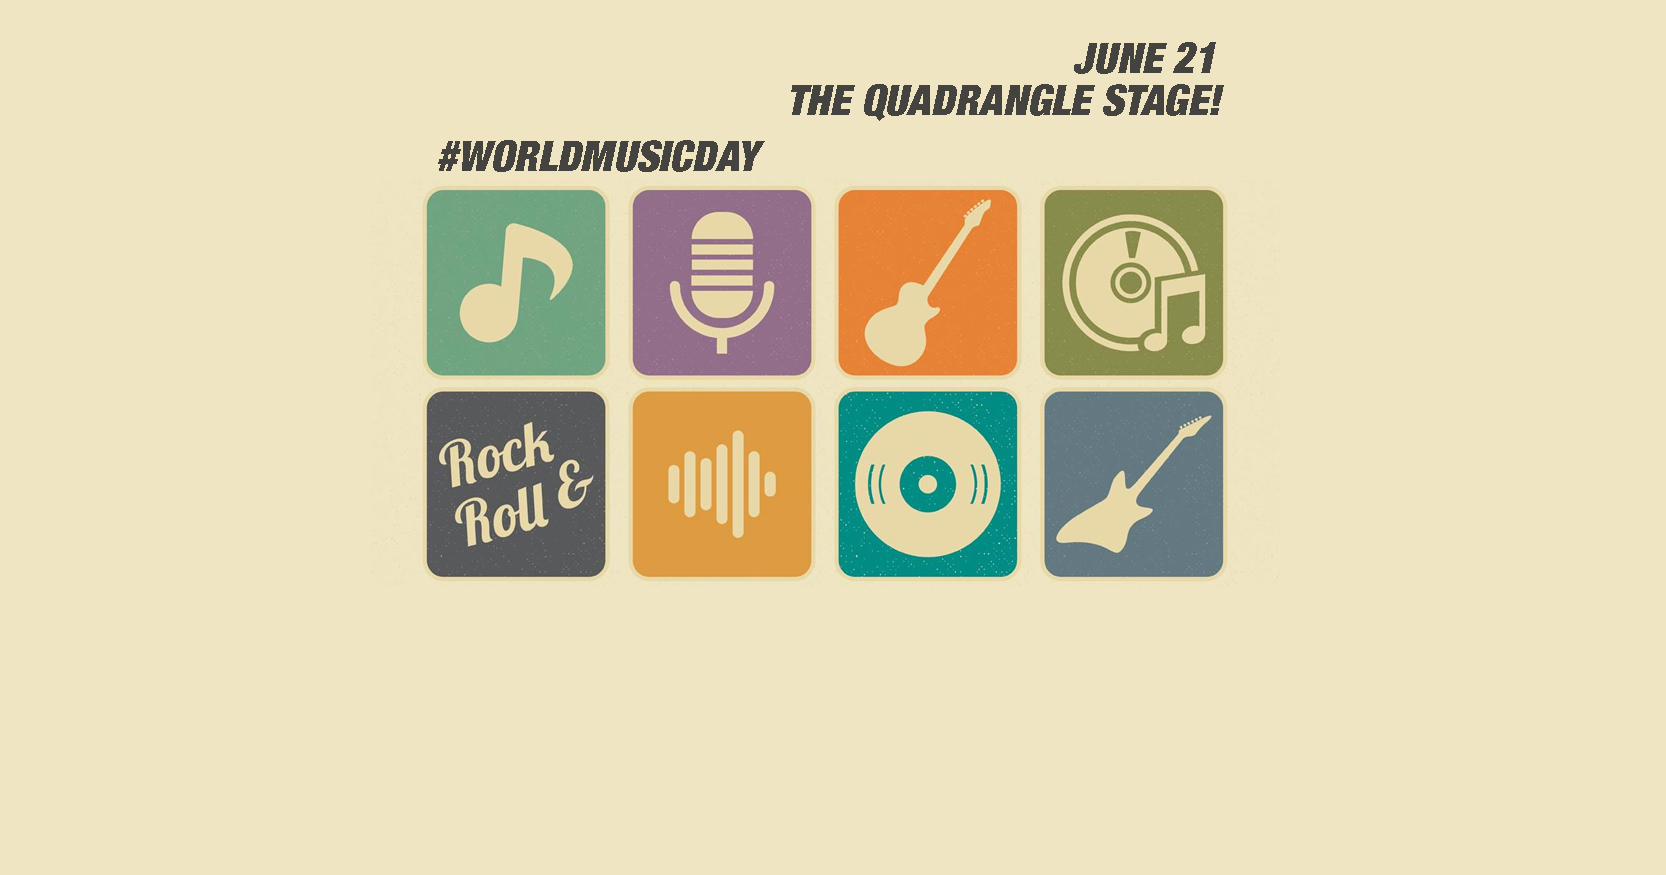 BandAge -Celebrating World Music Day 2016 - The Quadrangle Stage -